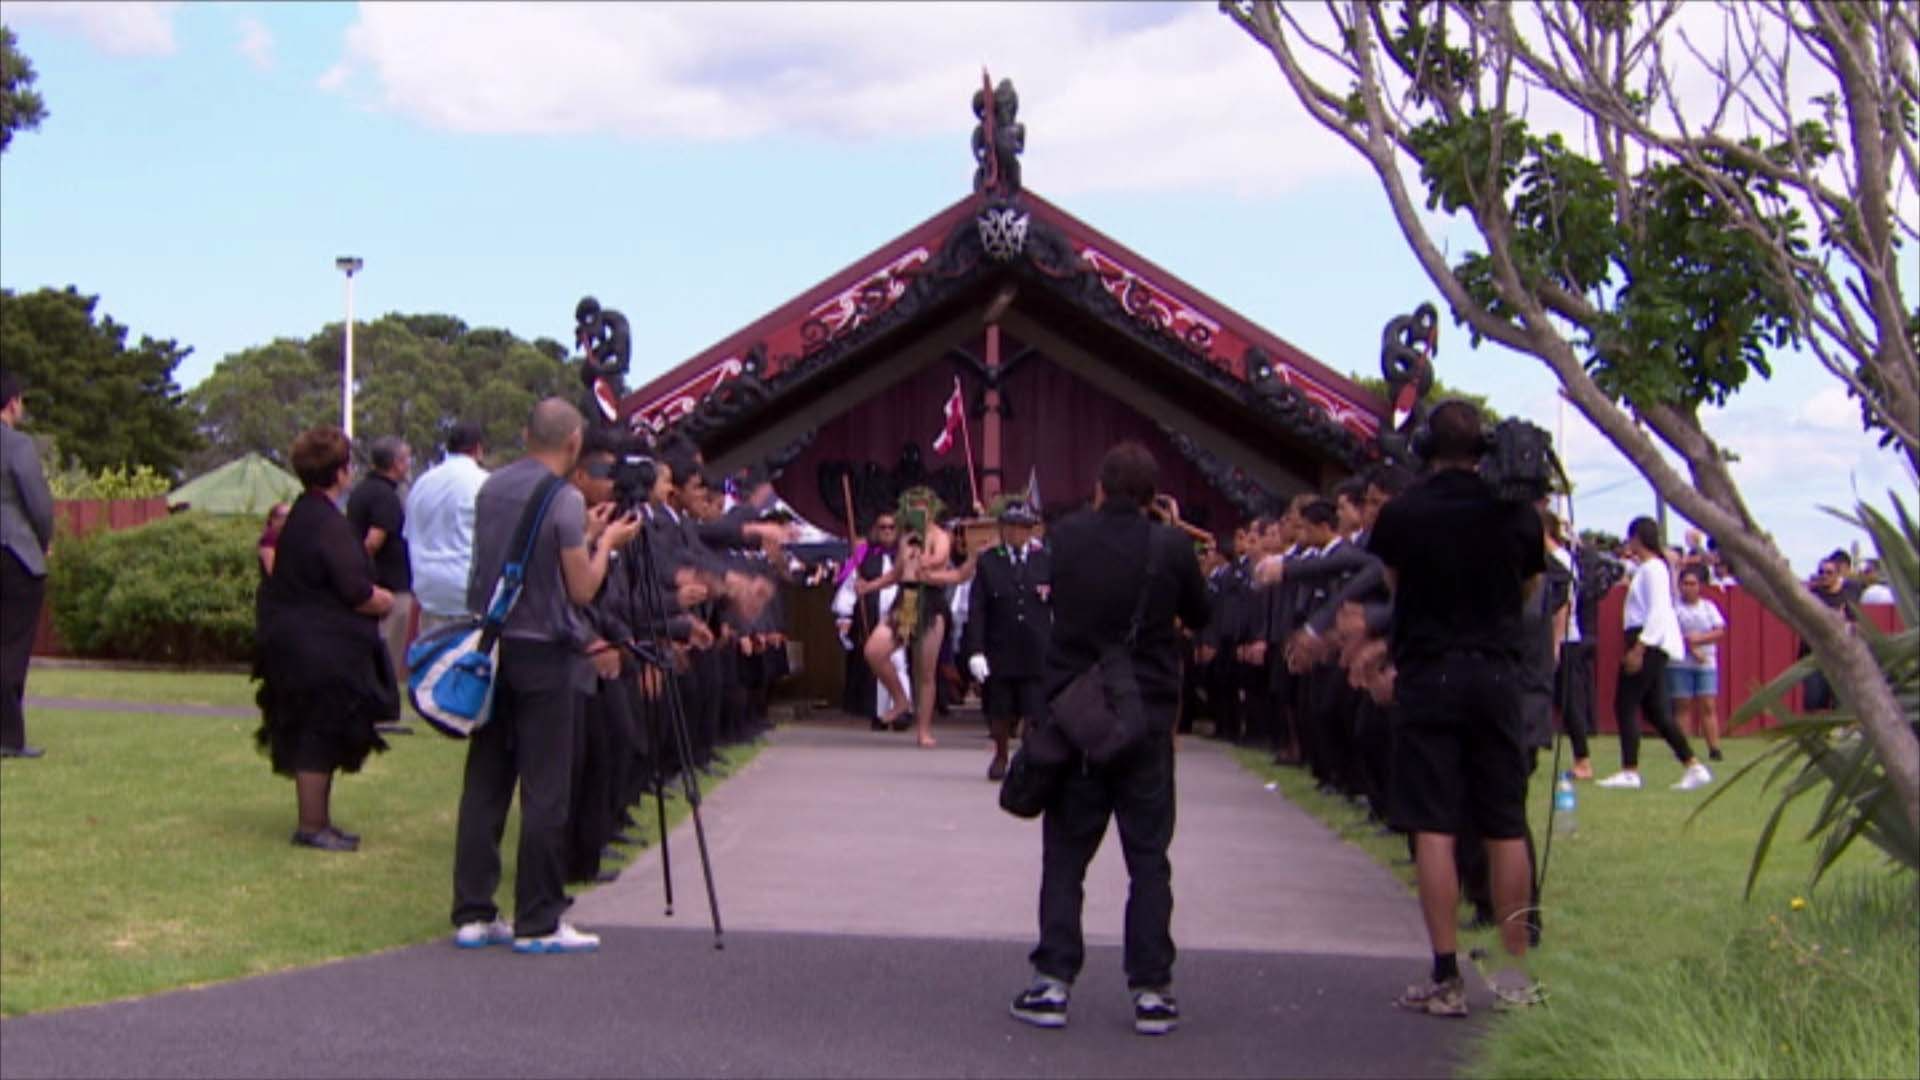 Concerns raised around how to enforce exclusion of unvaccinated from tangihanga